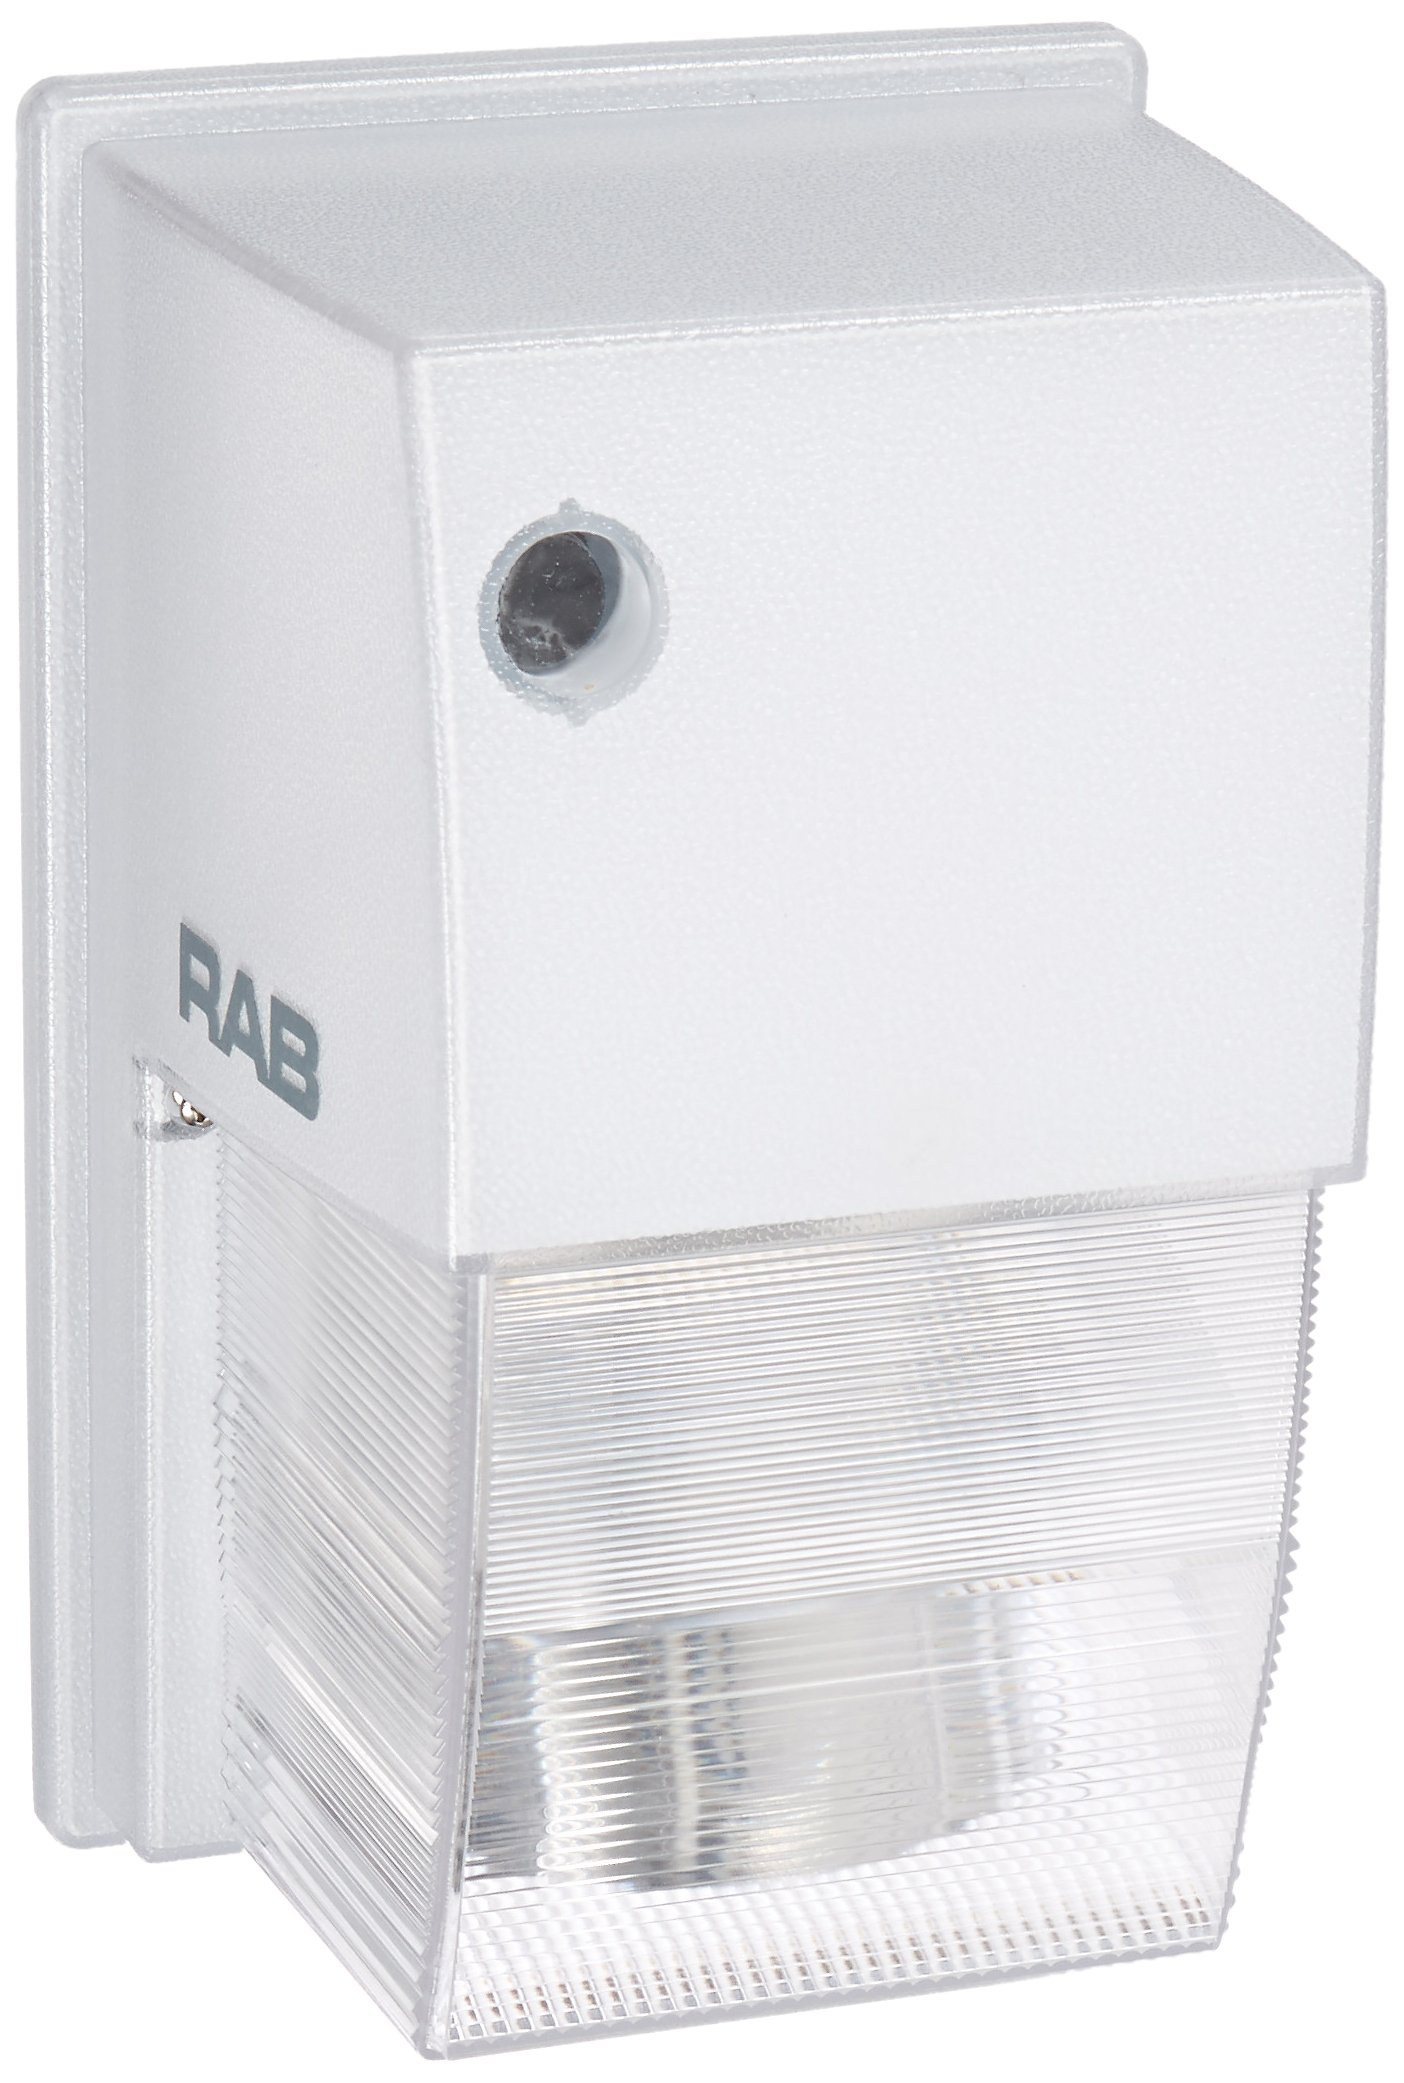 RAB Lighting WPTS50W Tallpack High Pressure Sodium Lamp with Polycarbonate Molded Refractor, ED17 Type, Aluminum, 50W Power, 4000 Lumens, 120V, White